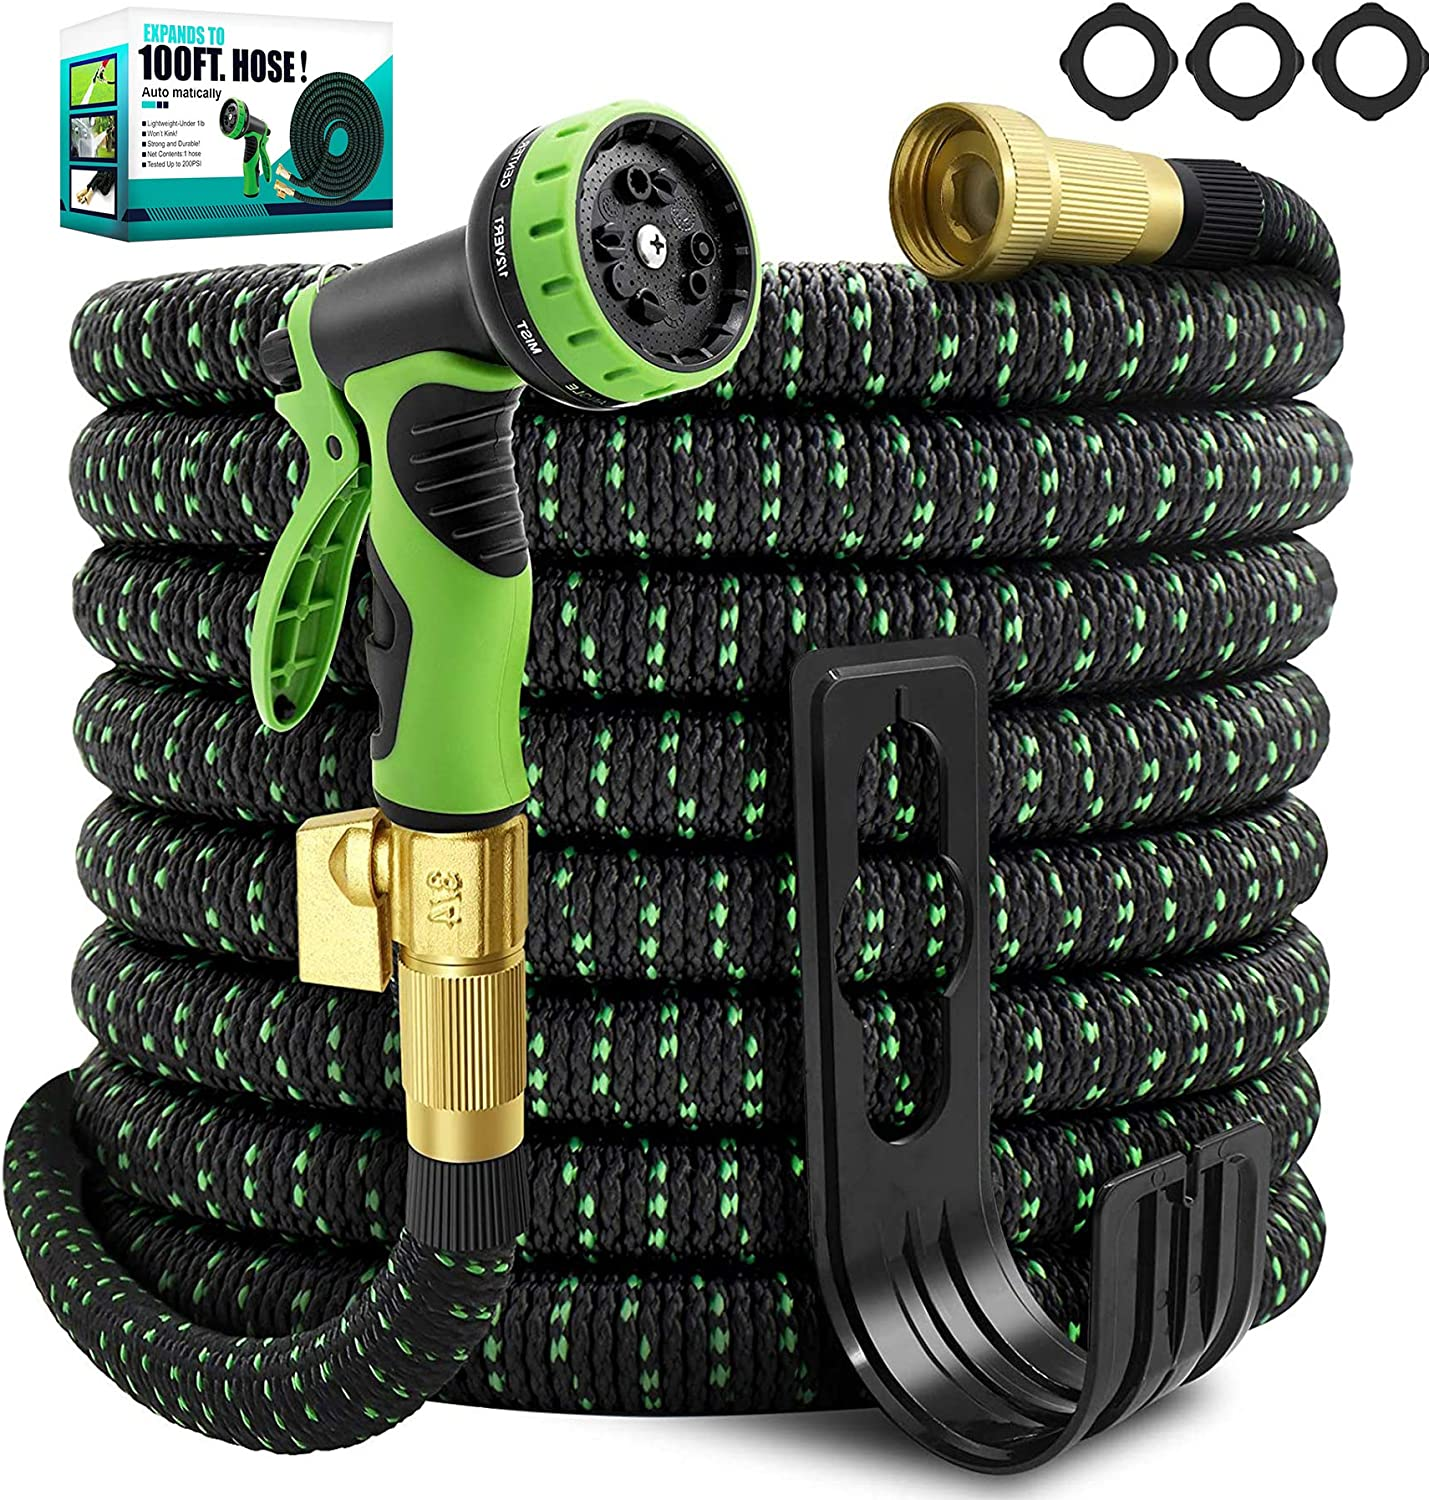 TIKUTKU 100ft Garden Hose,3X Expandable Hose with 10 Washing Mode,Durable and Flexible Lightweight Water Hose with 3/4'' Brass Shut Off Valve , Leakproof & No-Kink,for Daily Watering/Washing